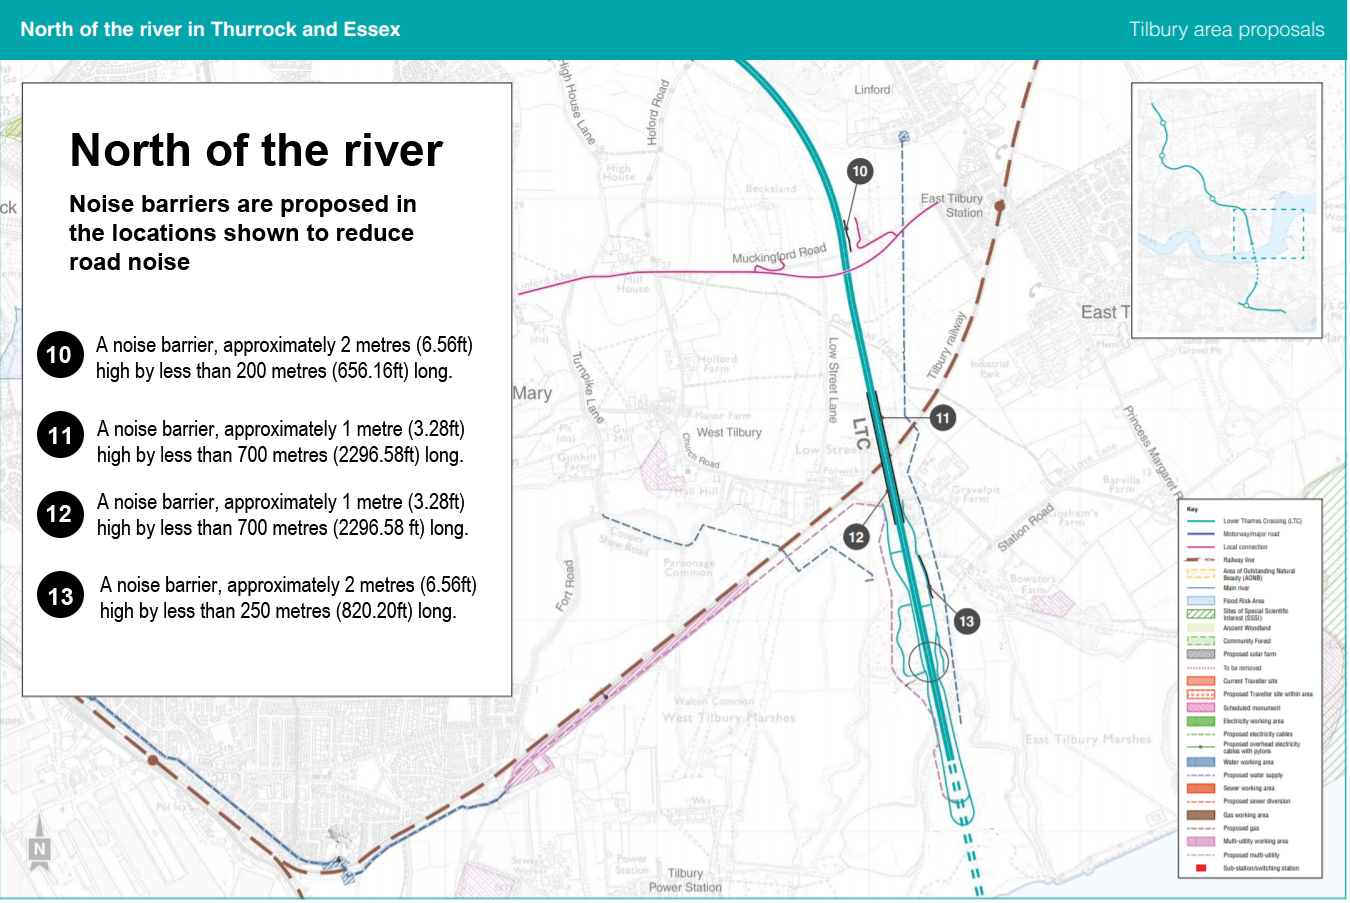 Map showing proposed noise barriers along the route north of the river (Thurrock)